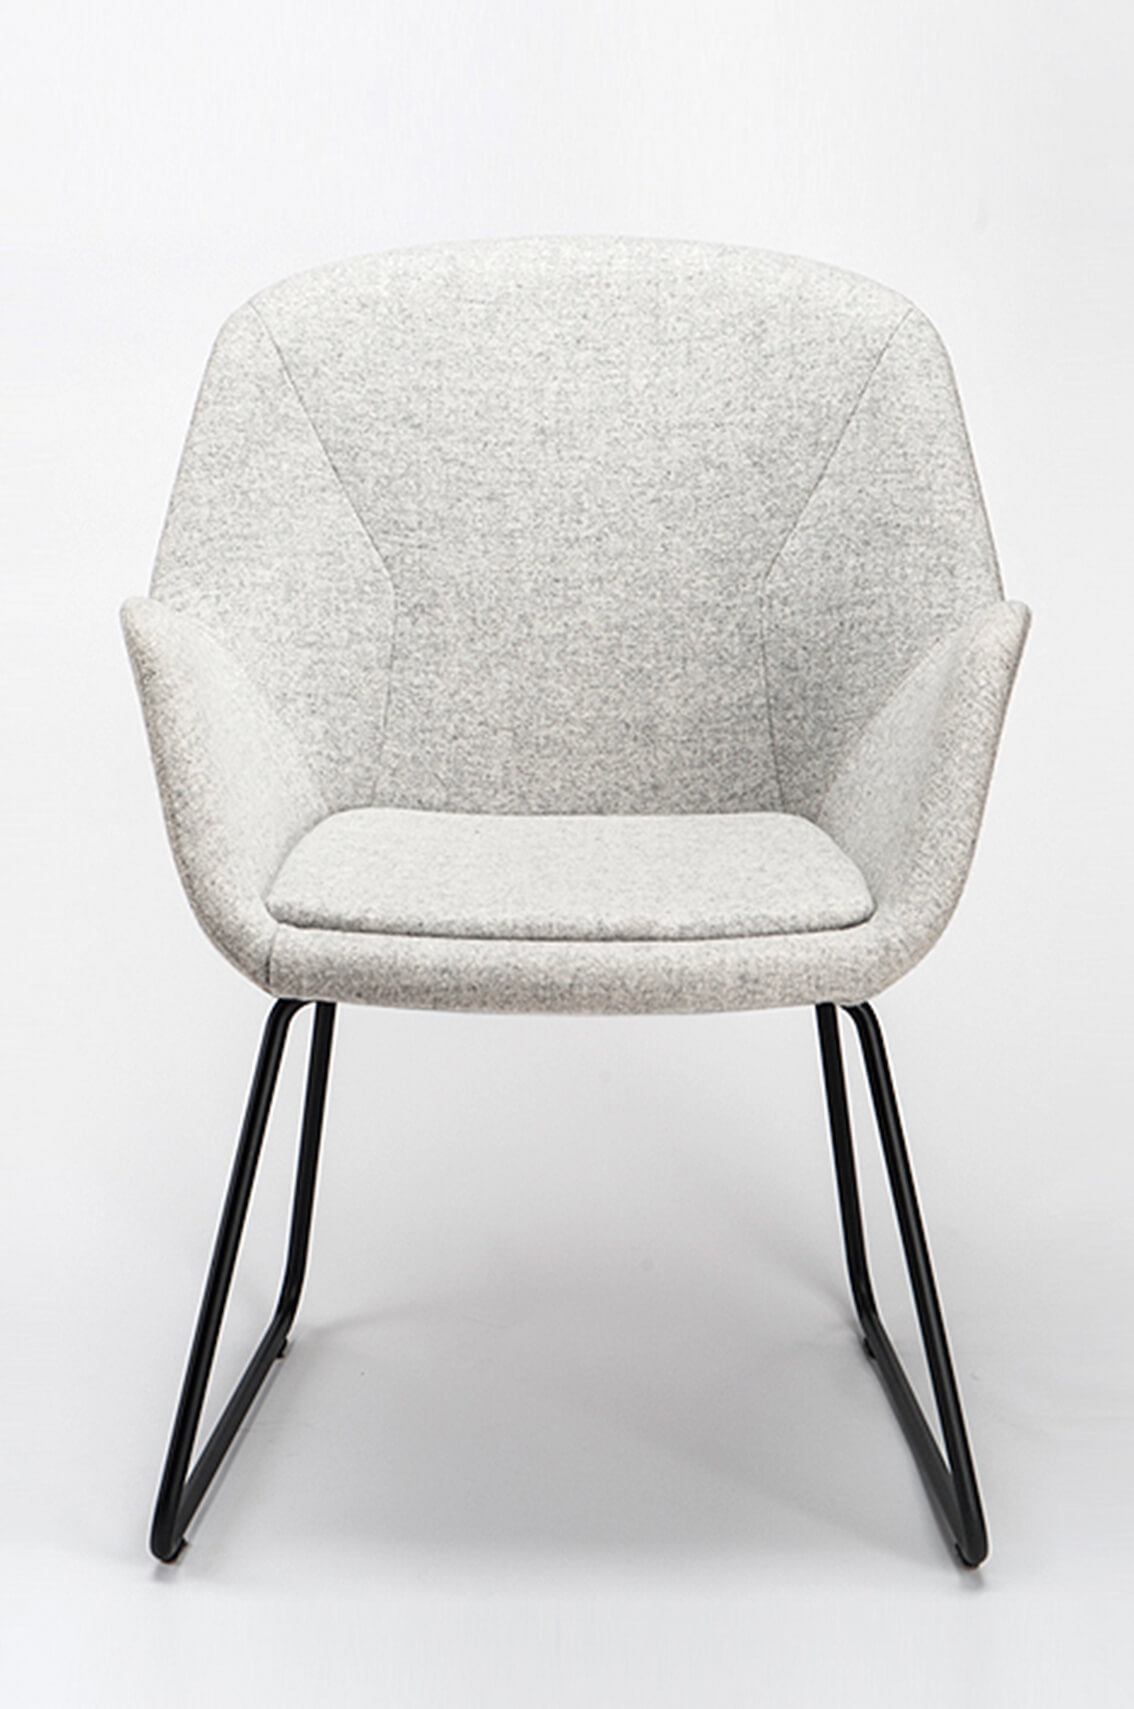 PULSE CHAIR